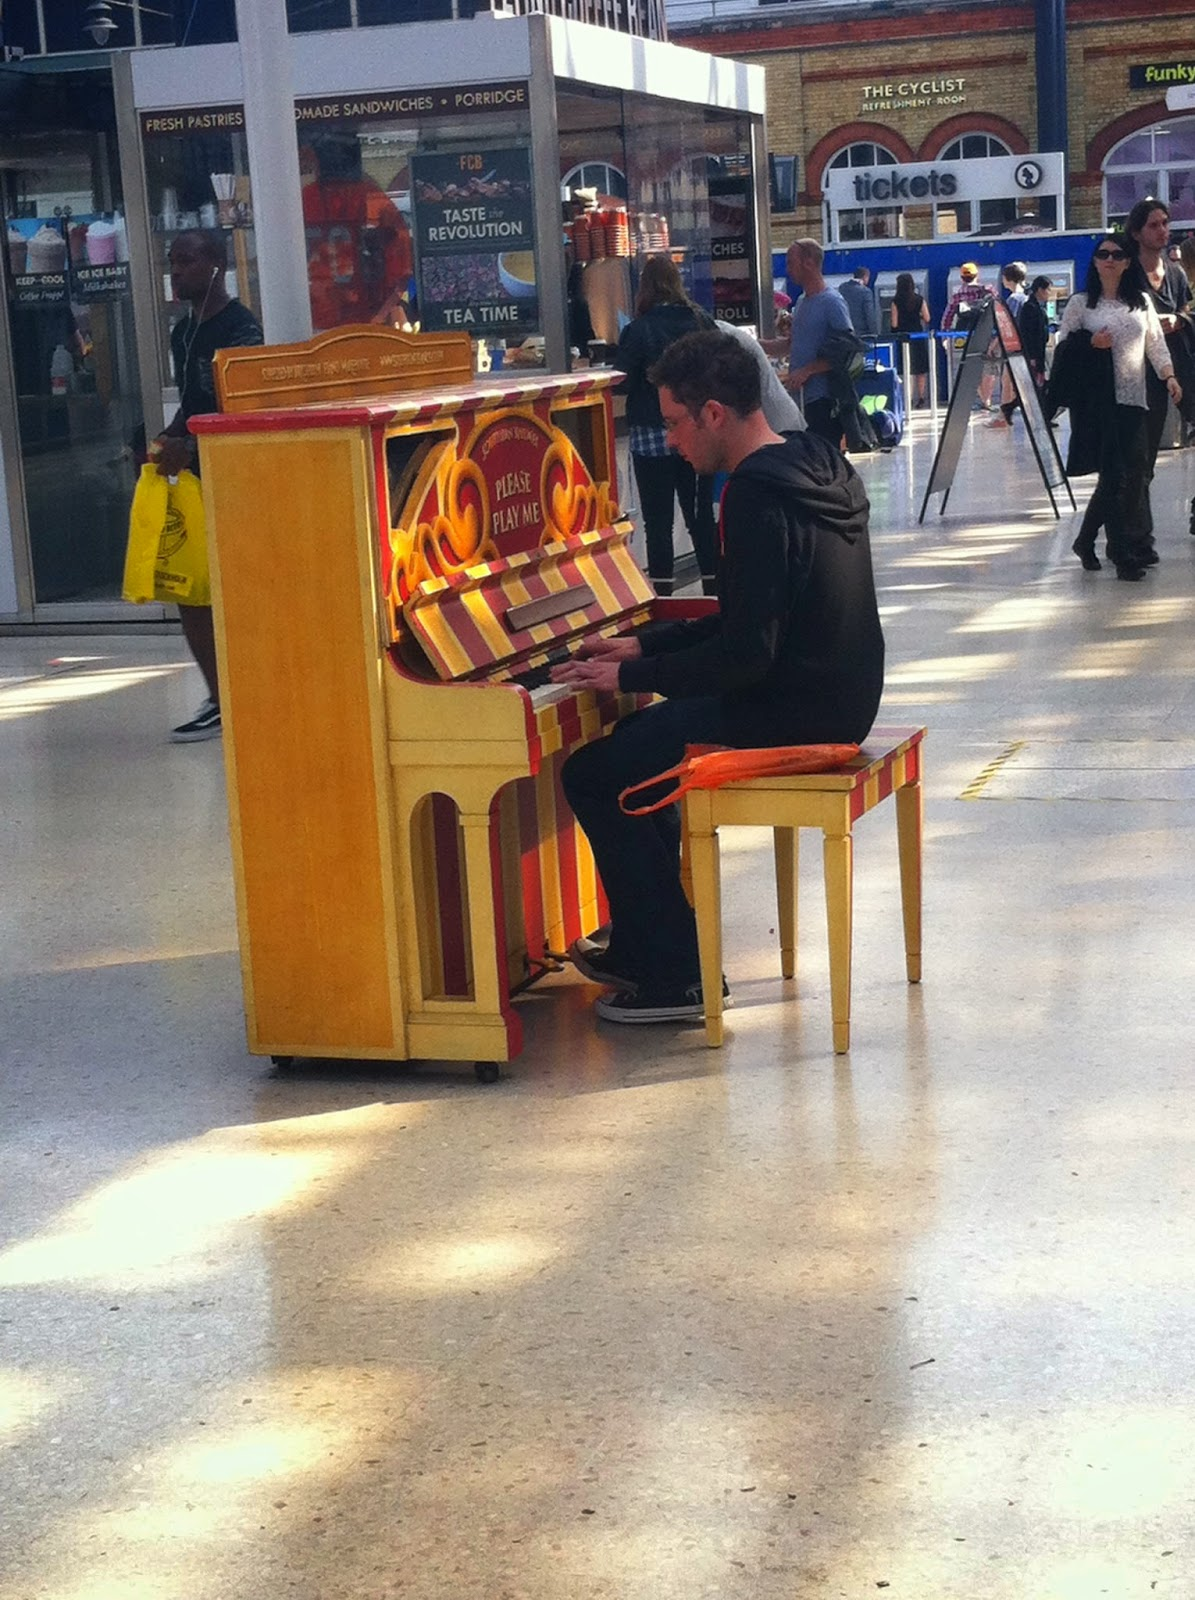 Brighton Station Piano